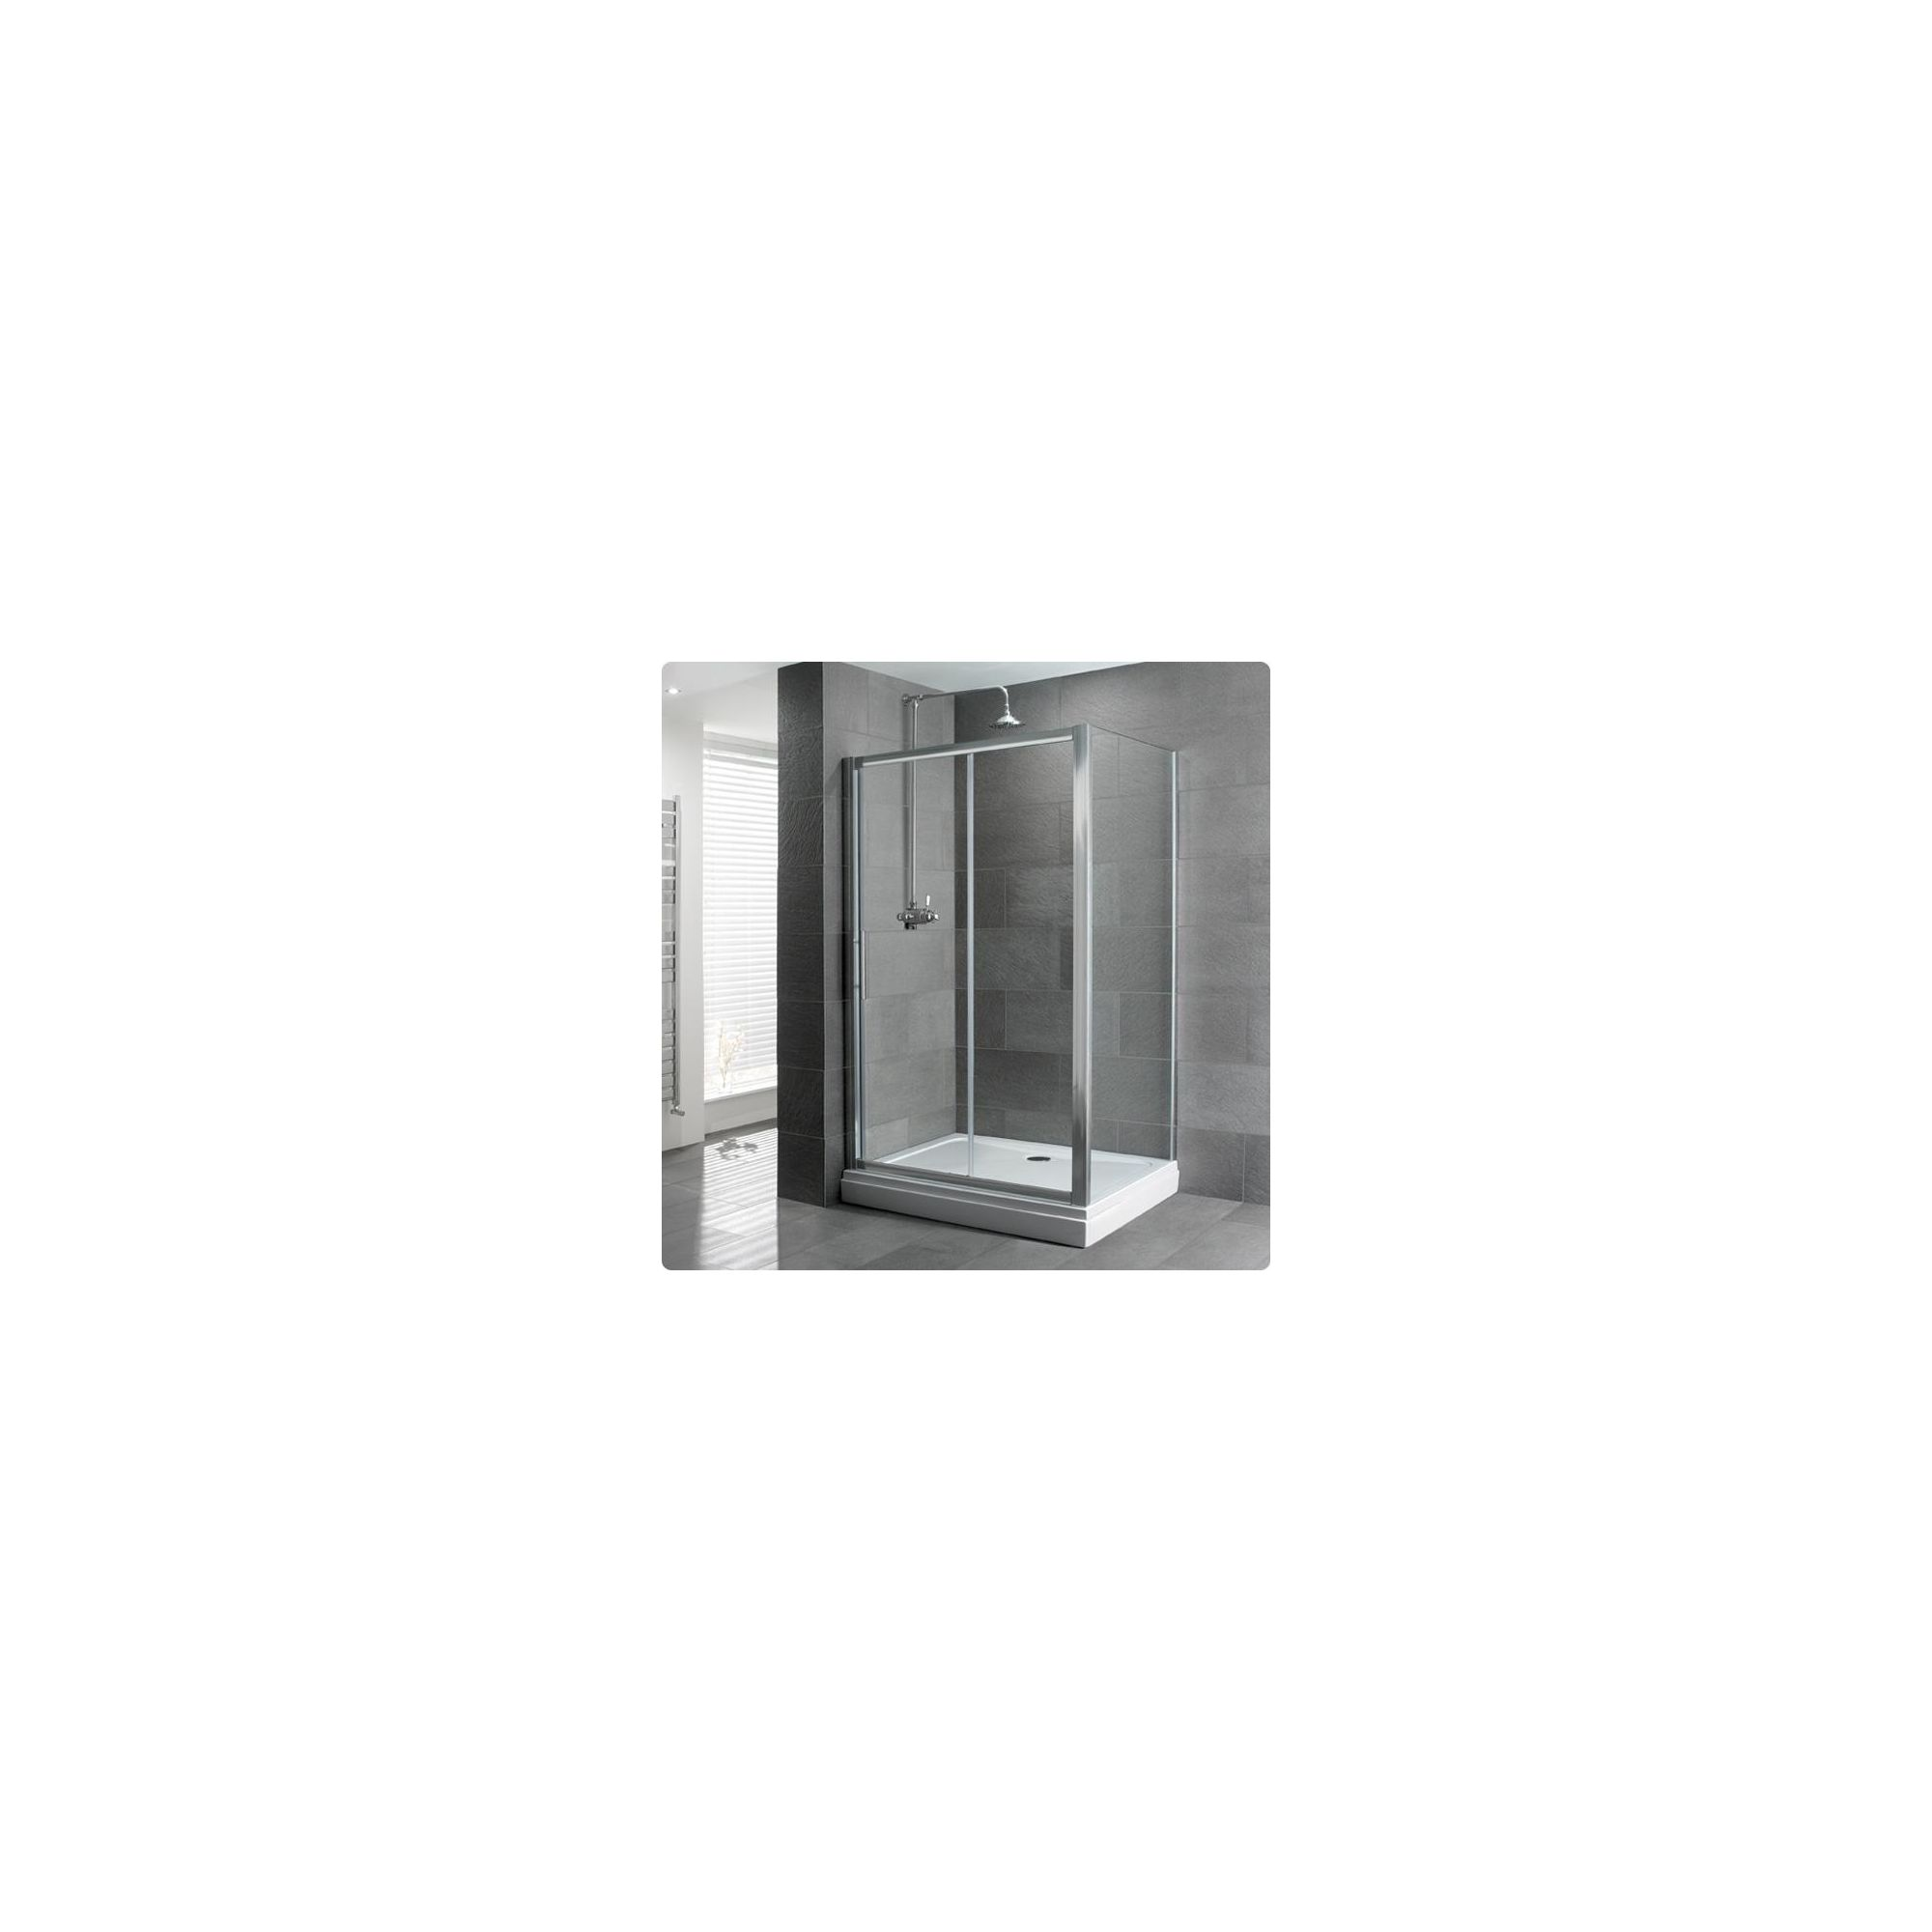 Duchy Select Silver Single Sliding Door Shower Enclosure, 1400mm x 760mm, Standard Tray, 6mm Glass at Tesco Direct